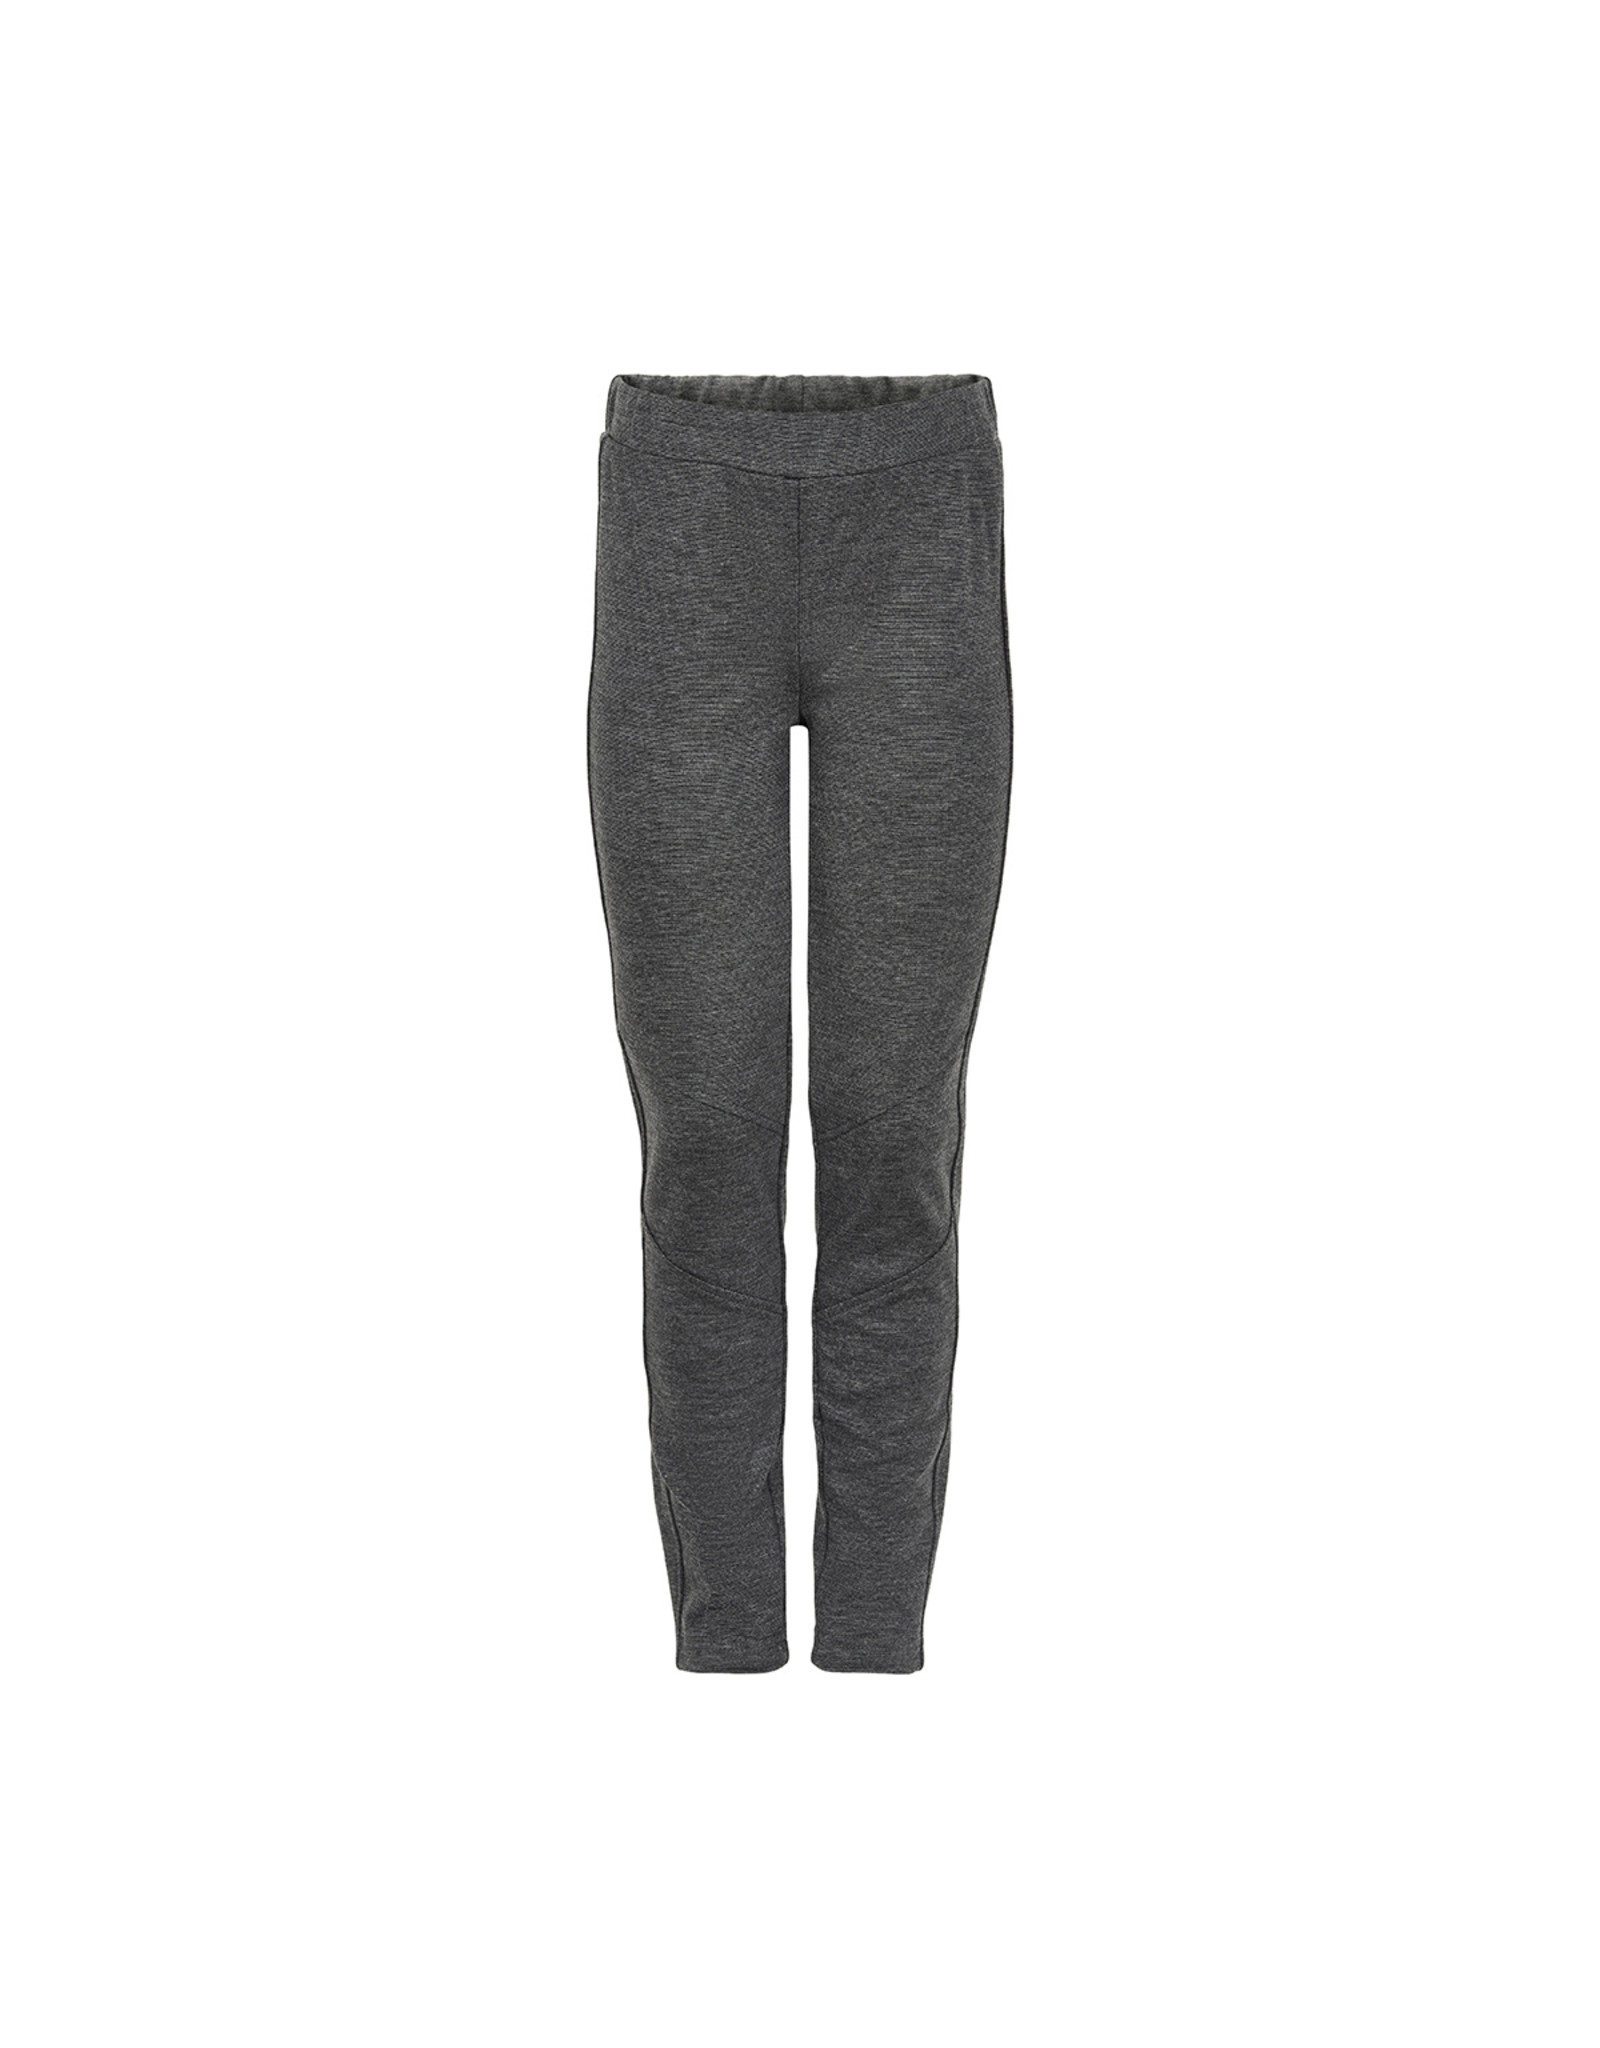 Creamie Creamie Interlock Legging-Dark Grey Melange